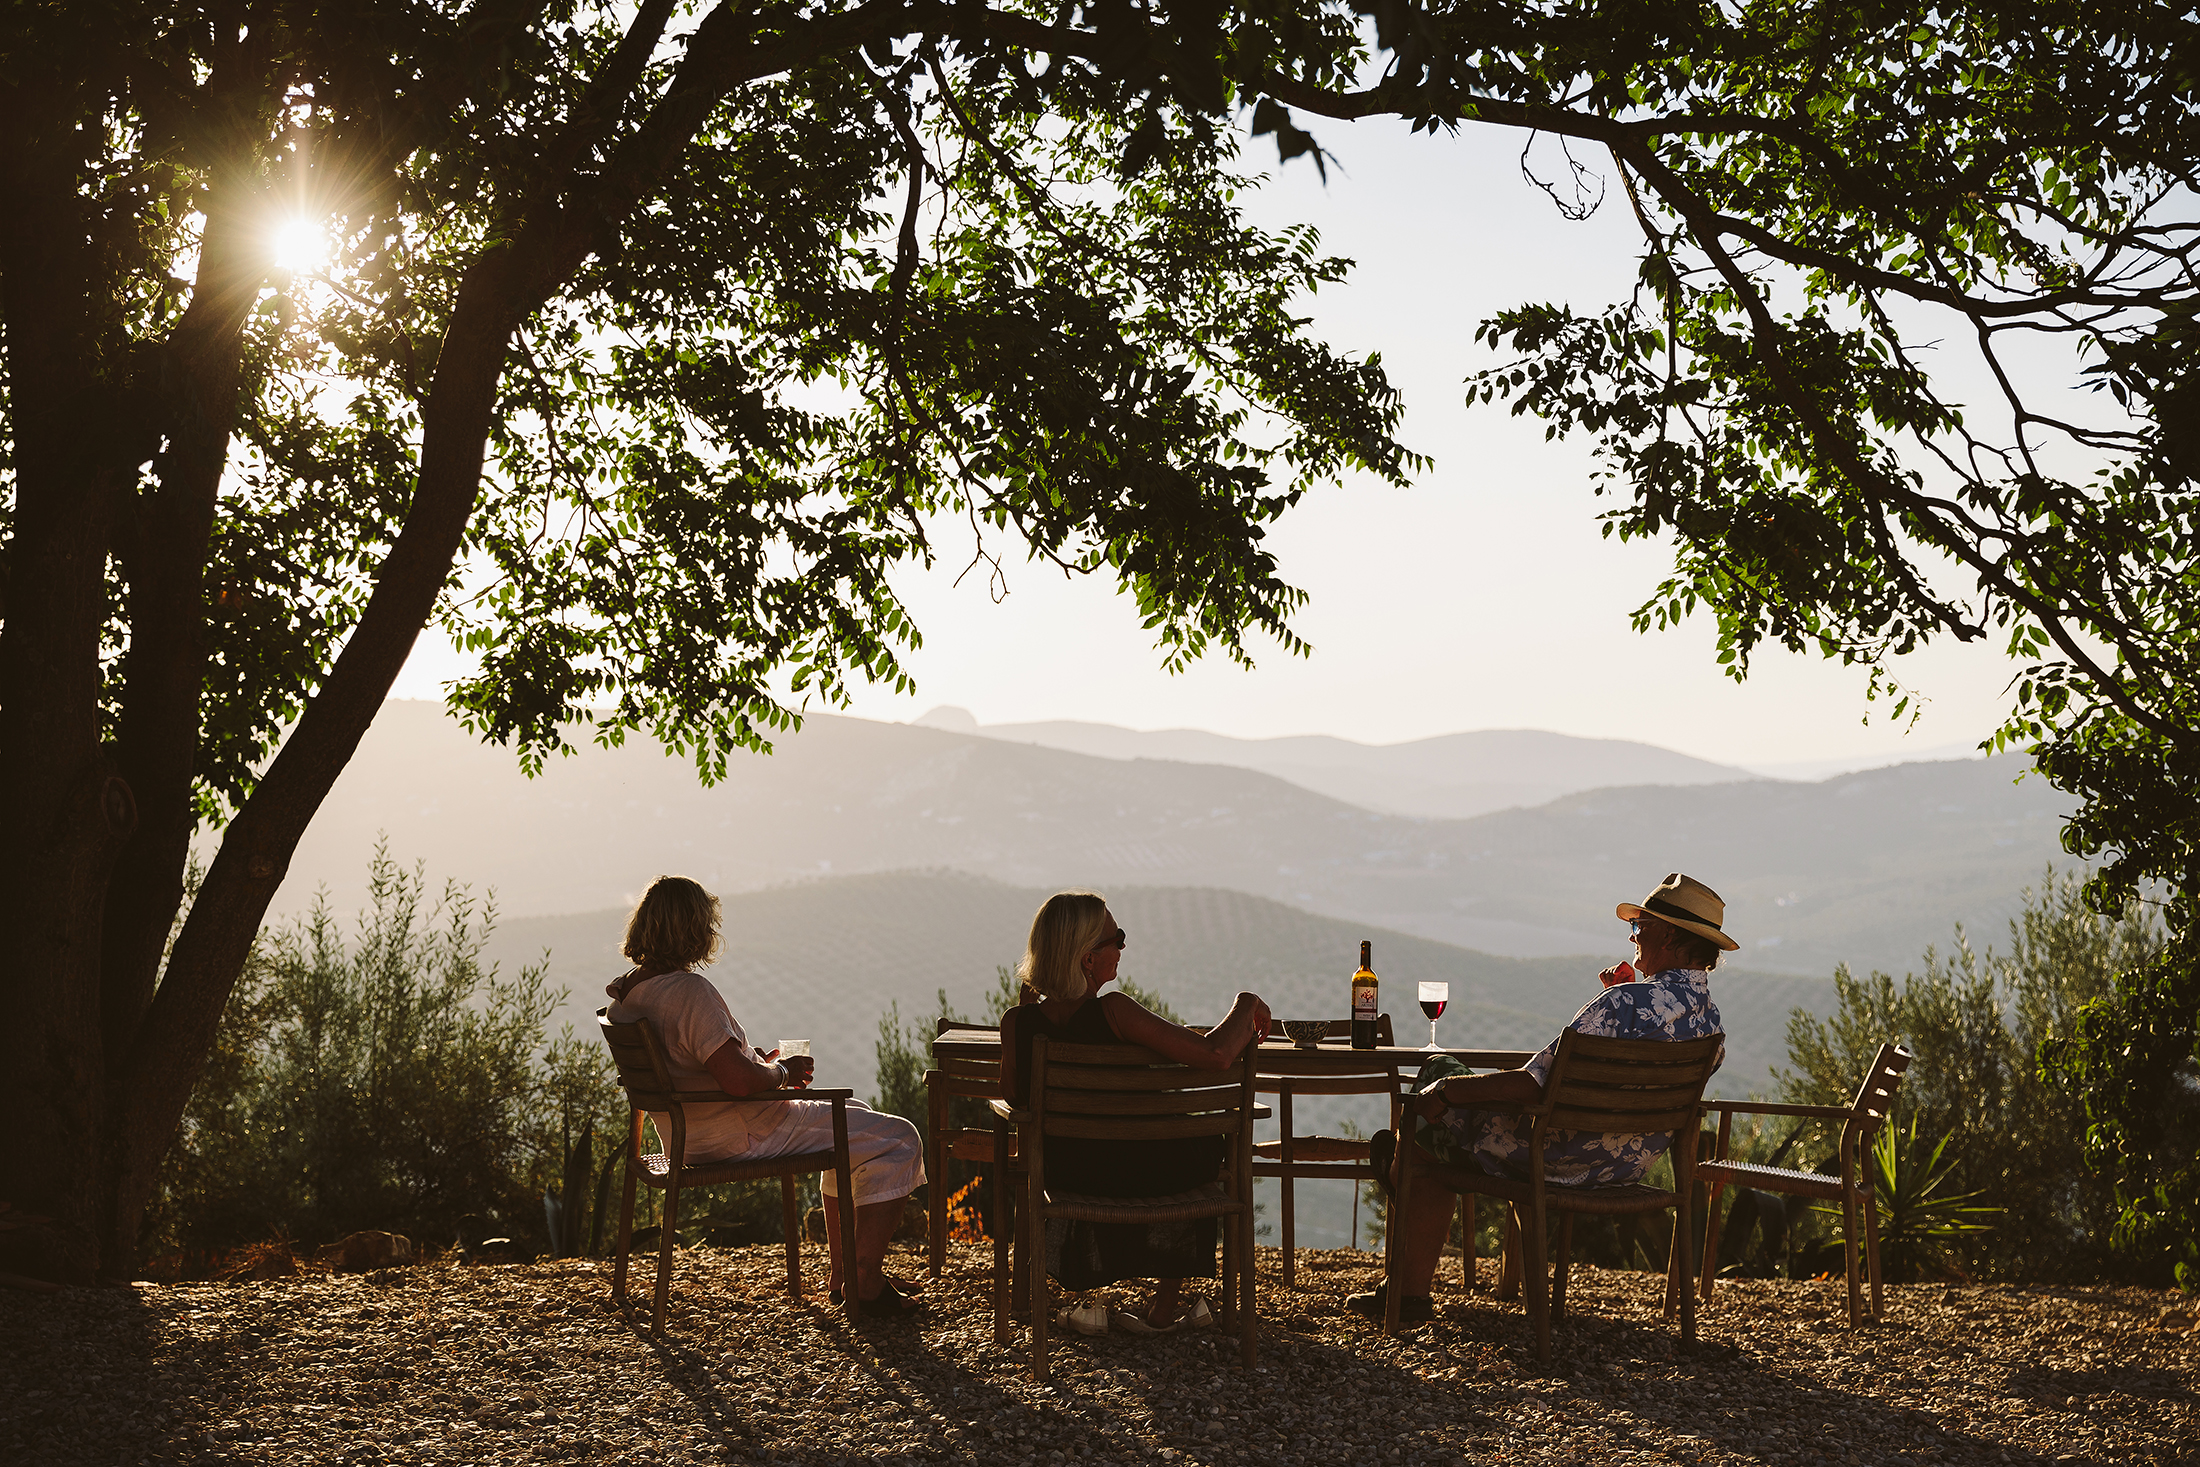 Three people sitting at a table during sunset in Spain